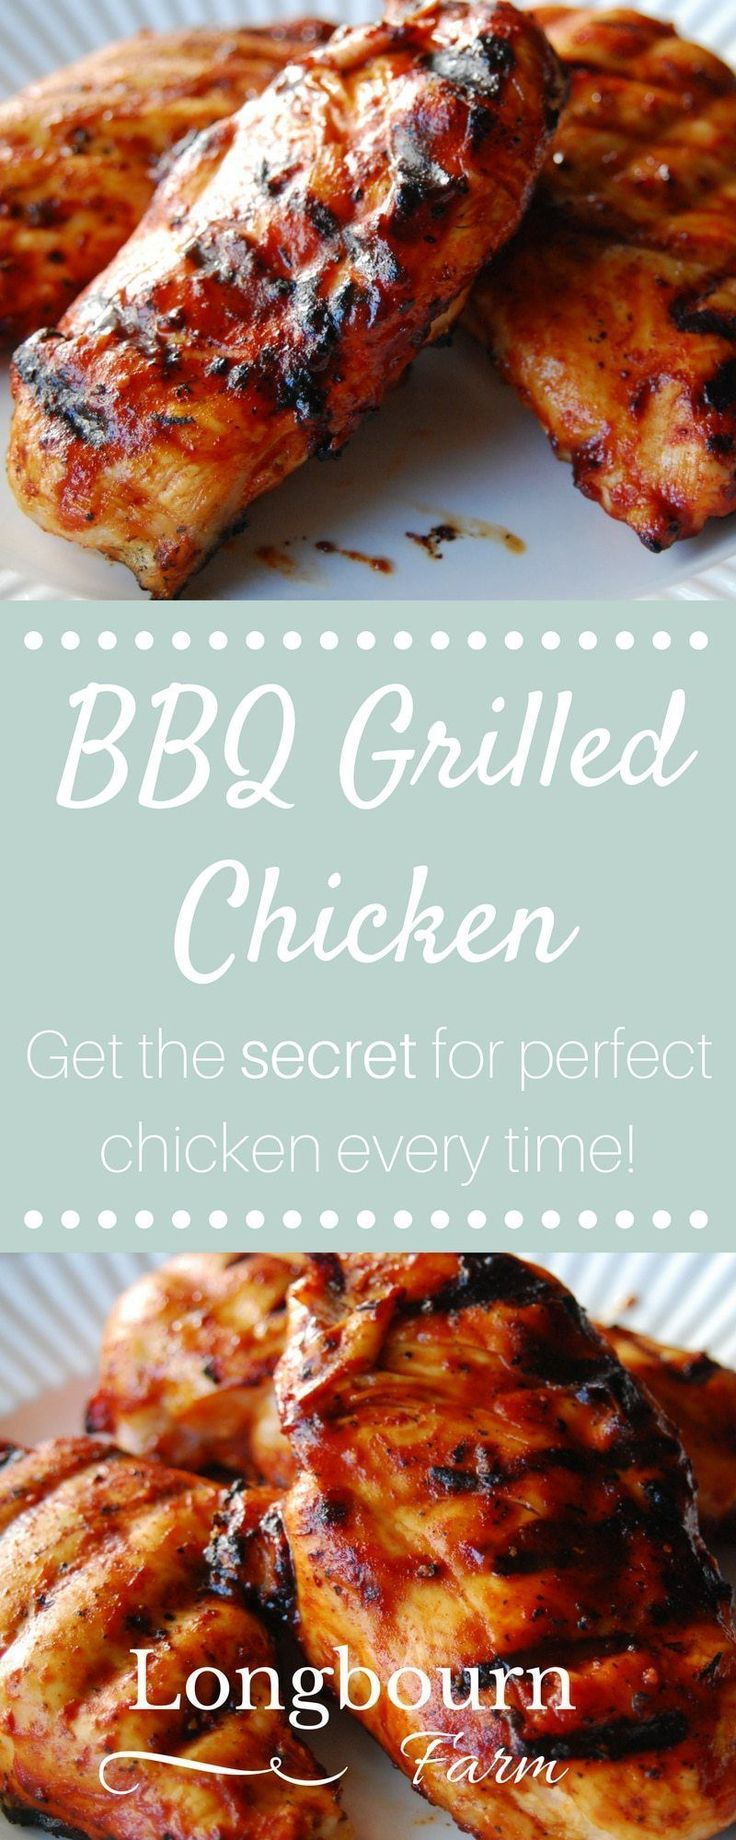 Find out the secret for how to make tender and juicy grilled BBQ chicken! No long brining steps, just a simple grilling method for perfect BBQ chicken. #chickengrill